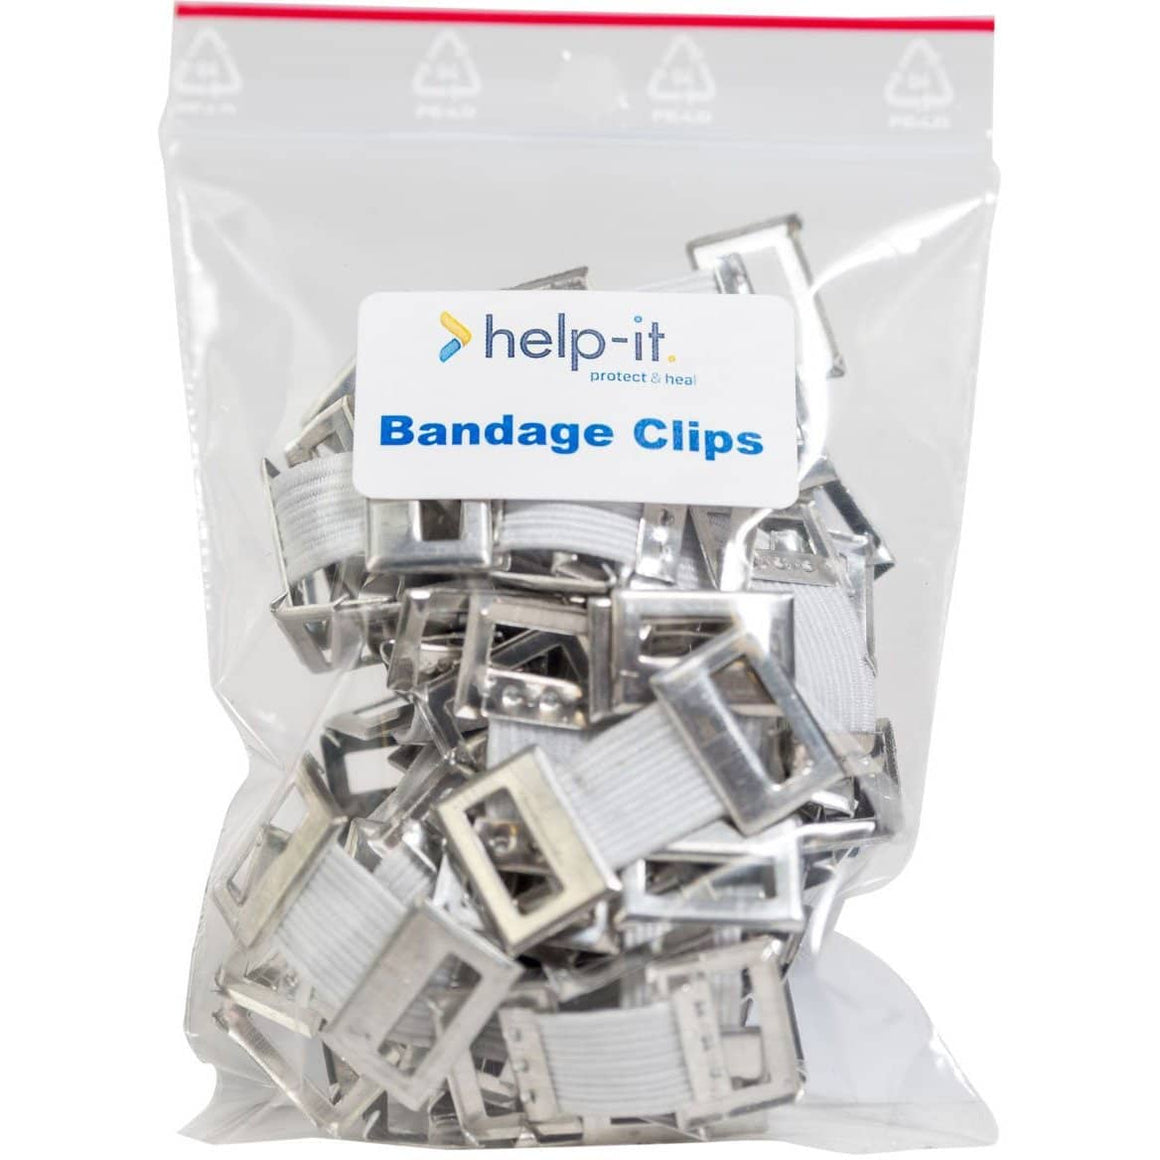 Help-It Bandage Clips